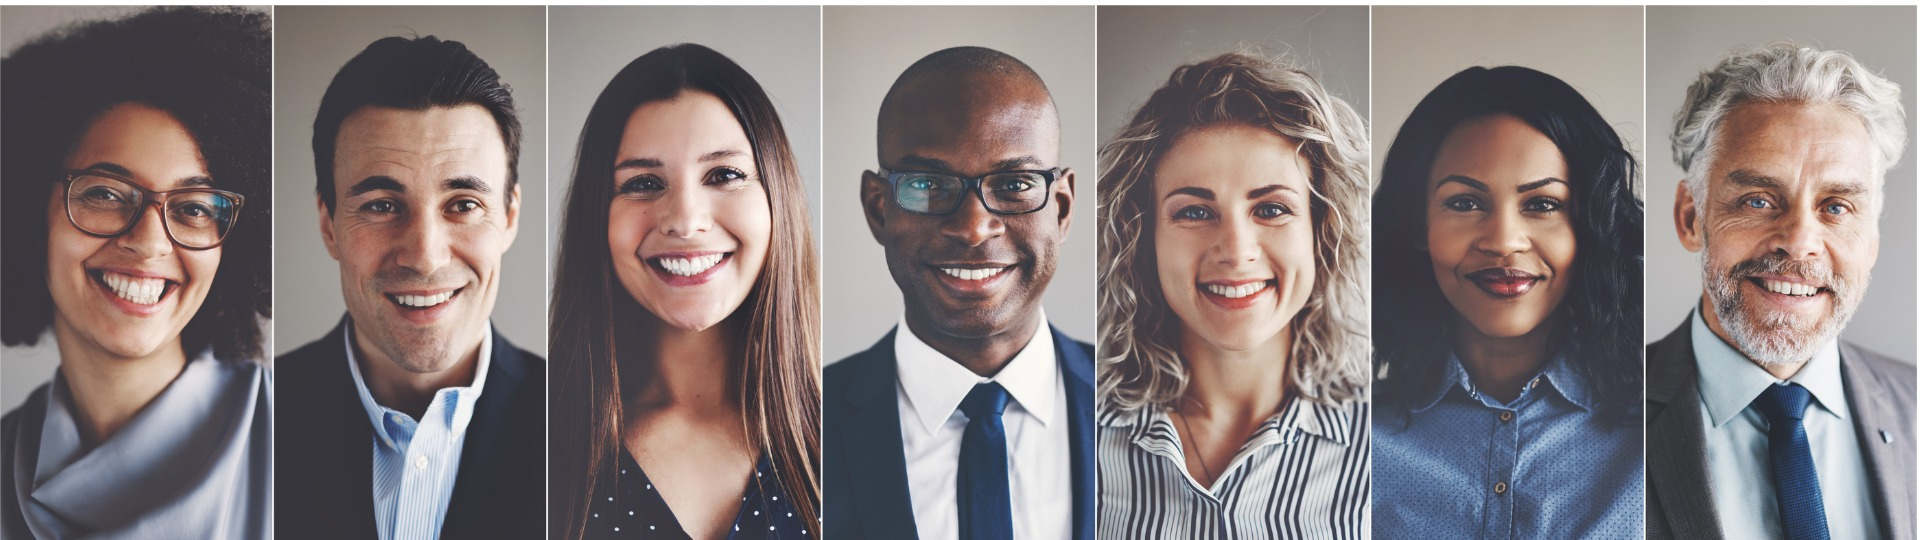 Smiling group of ethnically diverse businessmen and businesswomen picture id858269070